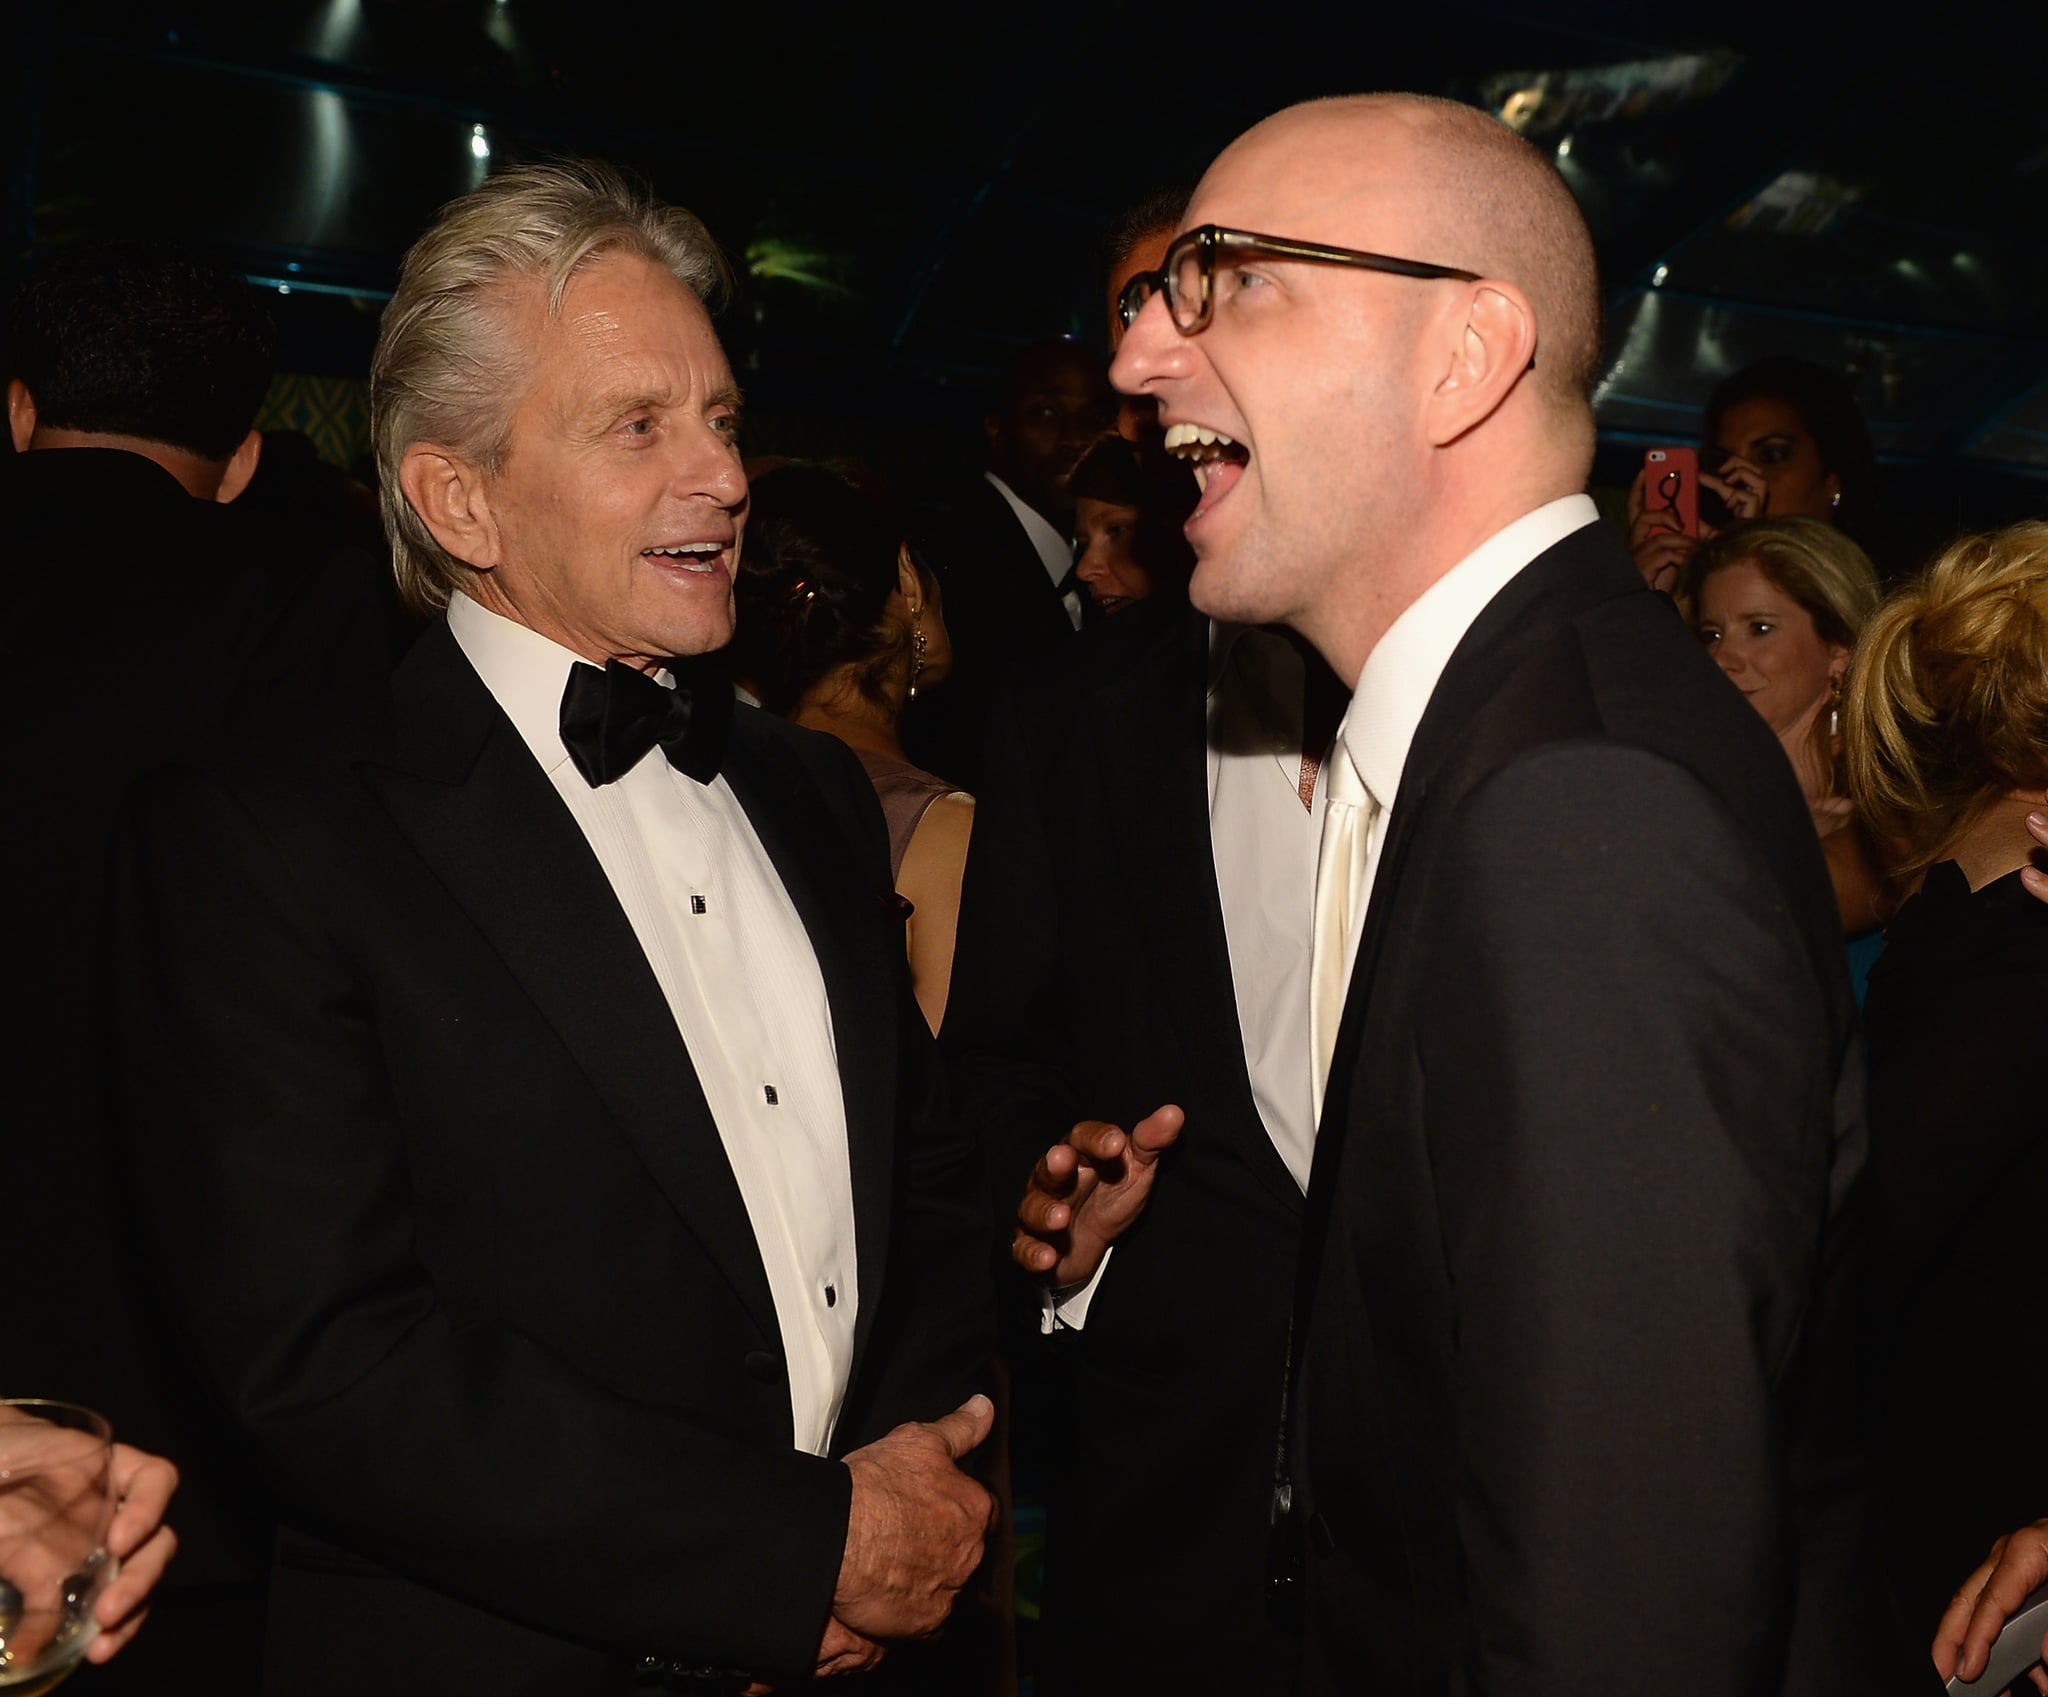 Michael Douglas chatted with Steven Soderbergh at the HBO afterparty.